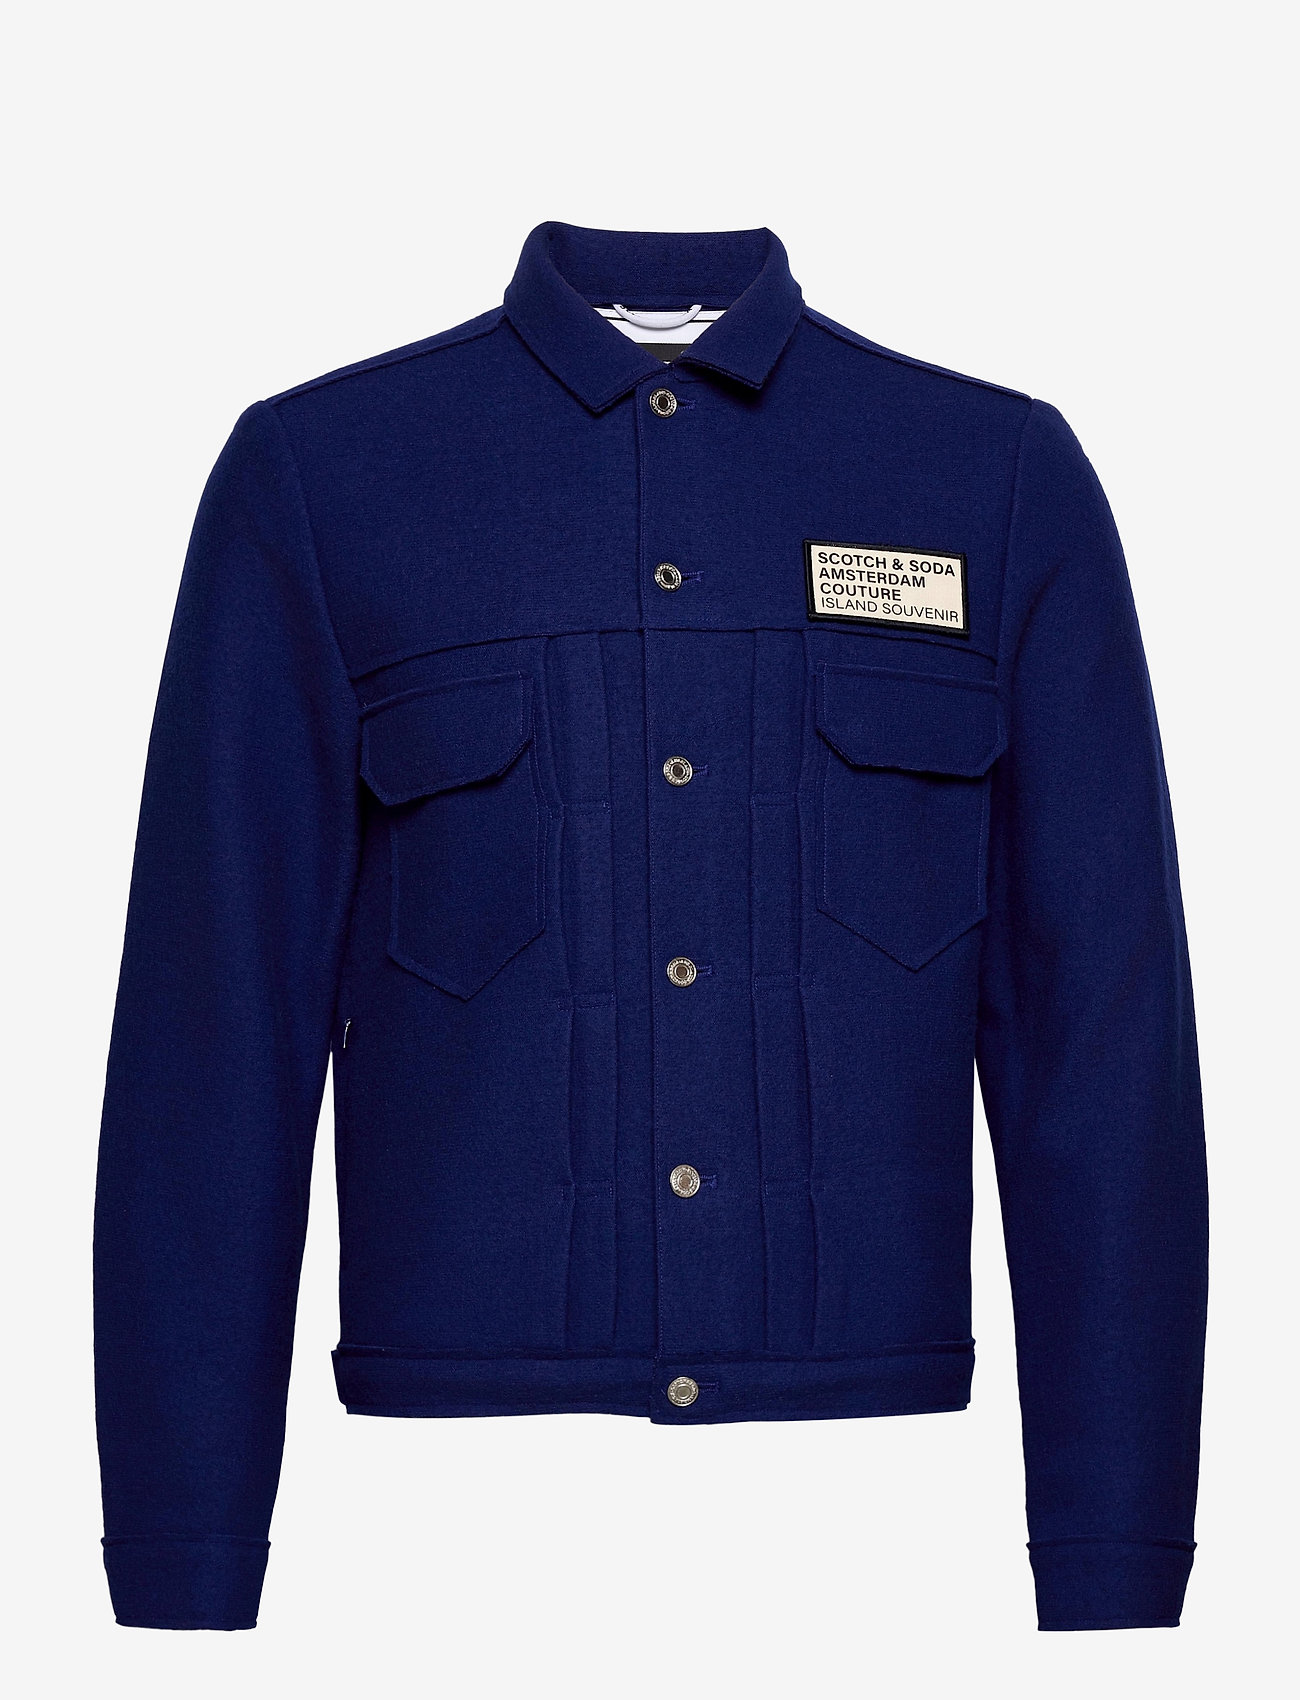 Scotch & Soda - Trucker jacket in boiled wool with chest badge - wool jackets - yinmin blue - 0